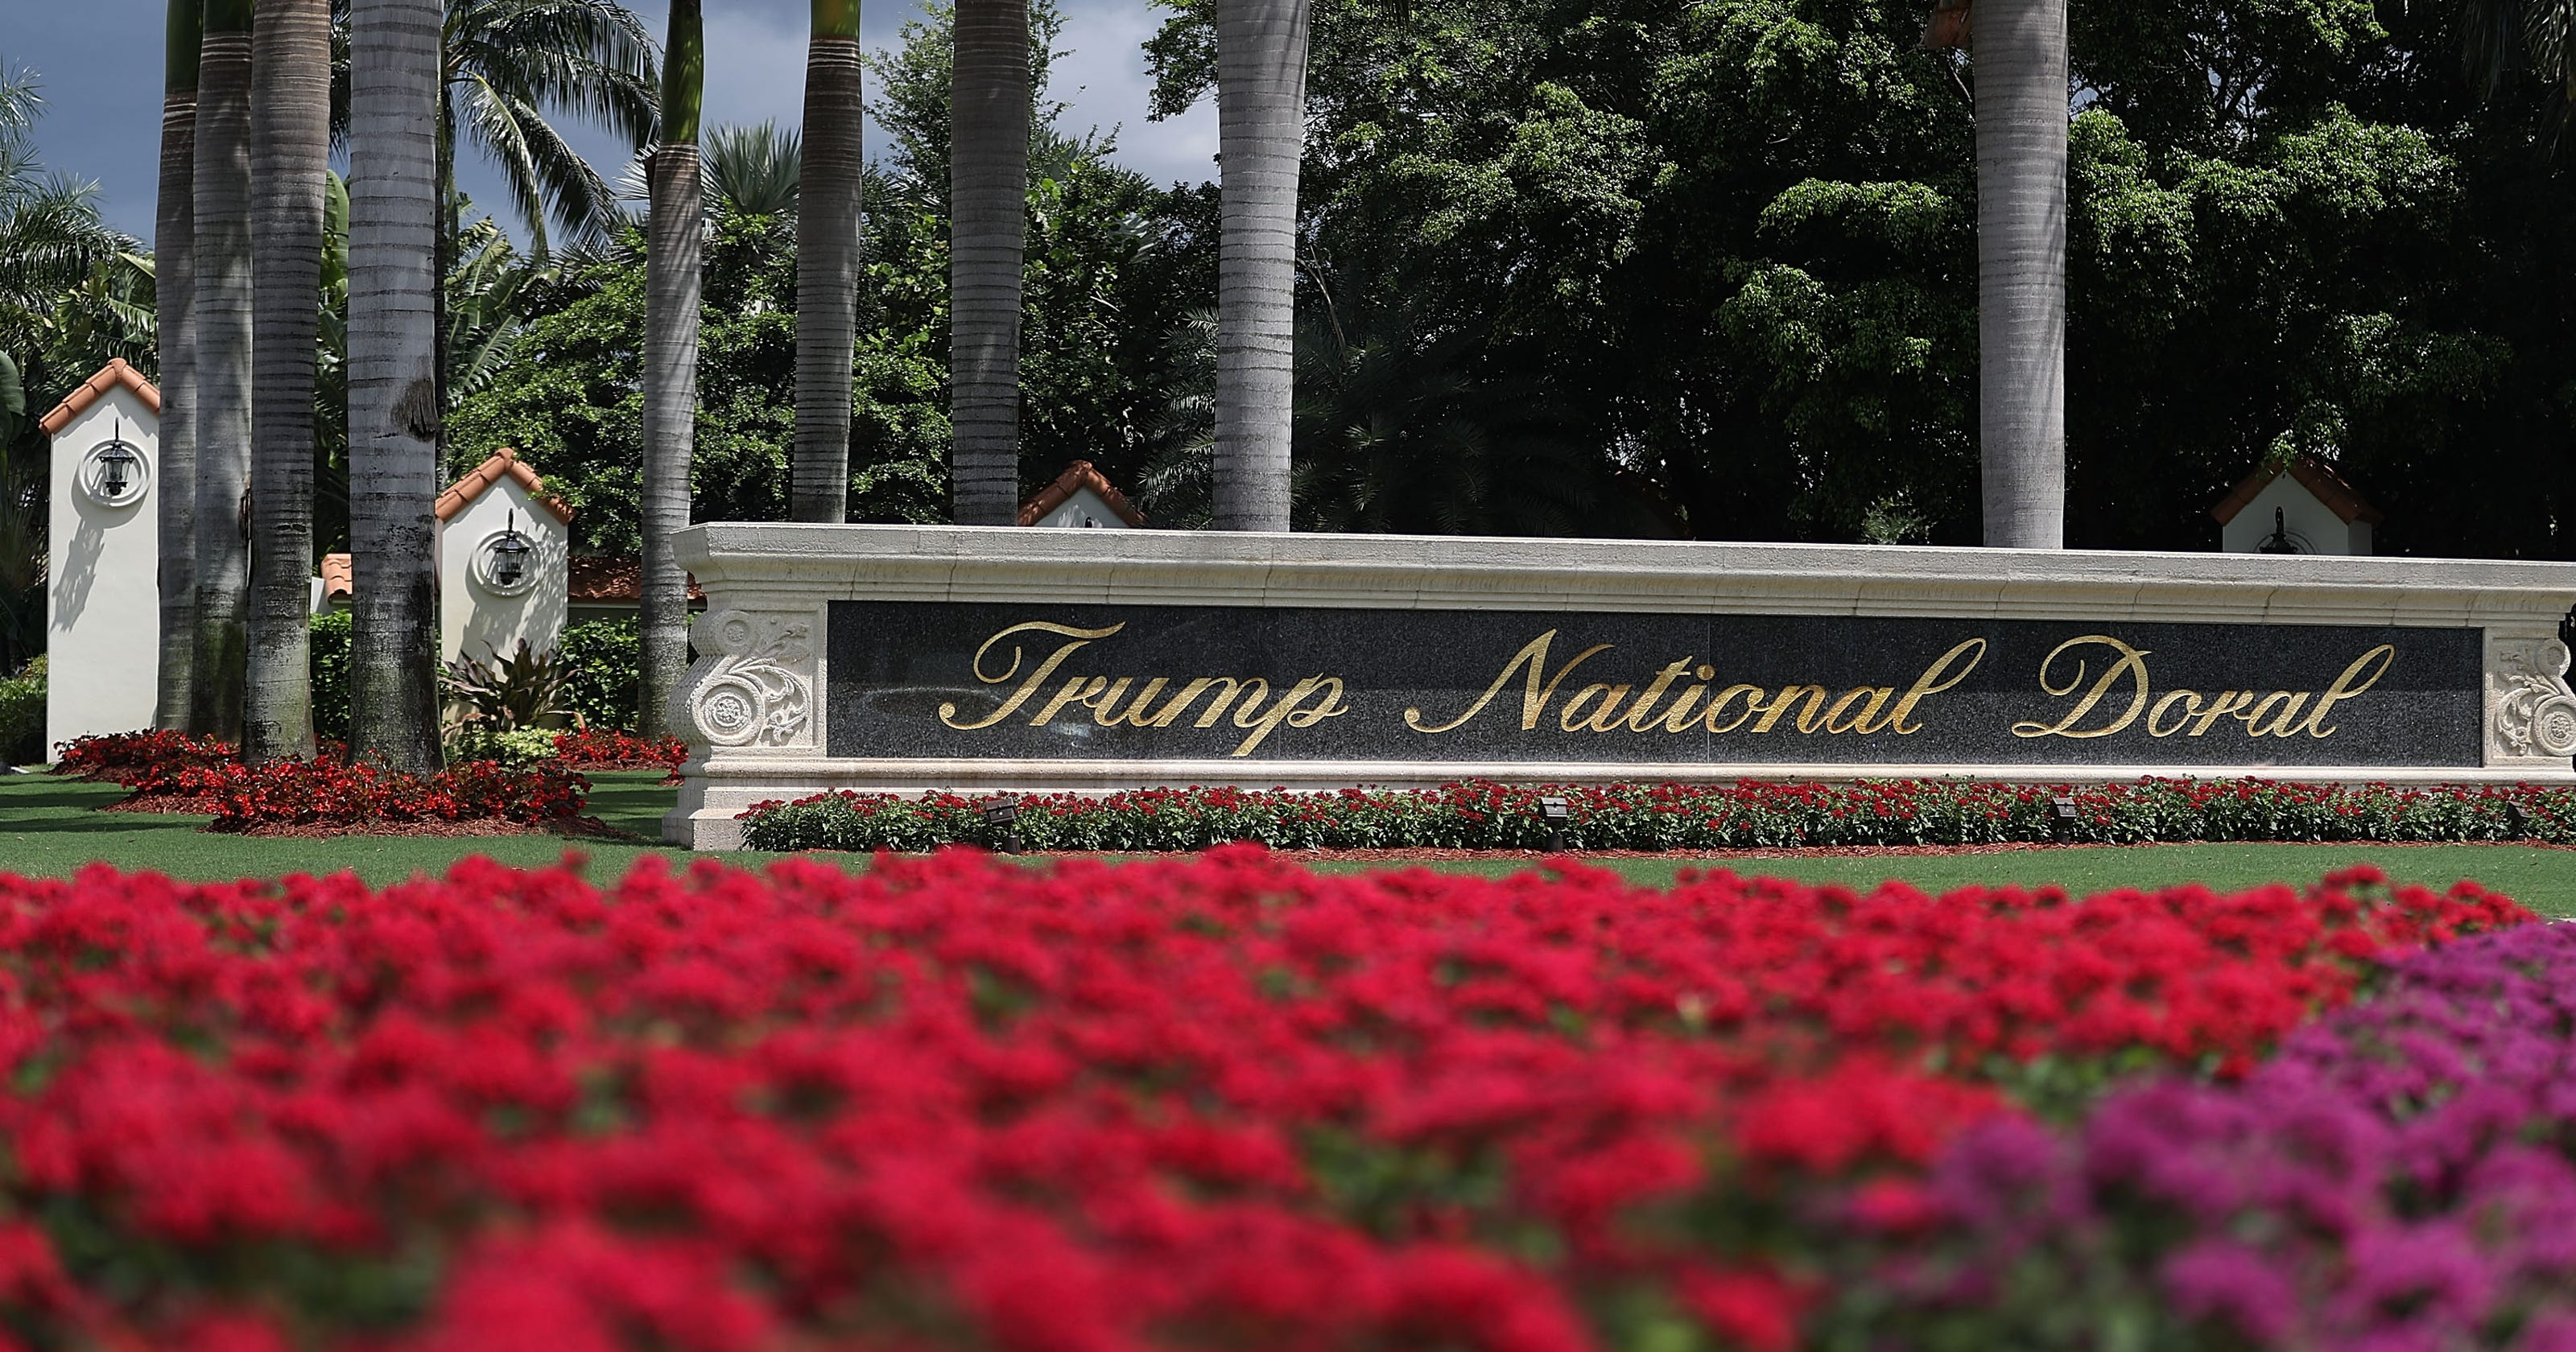 Report: Former members of Trump National Doral may be waiting a lifetime for refunds